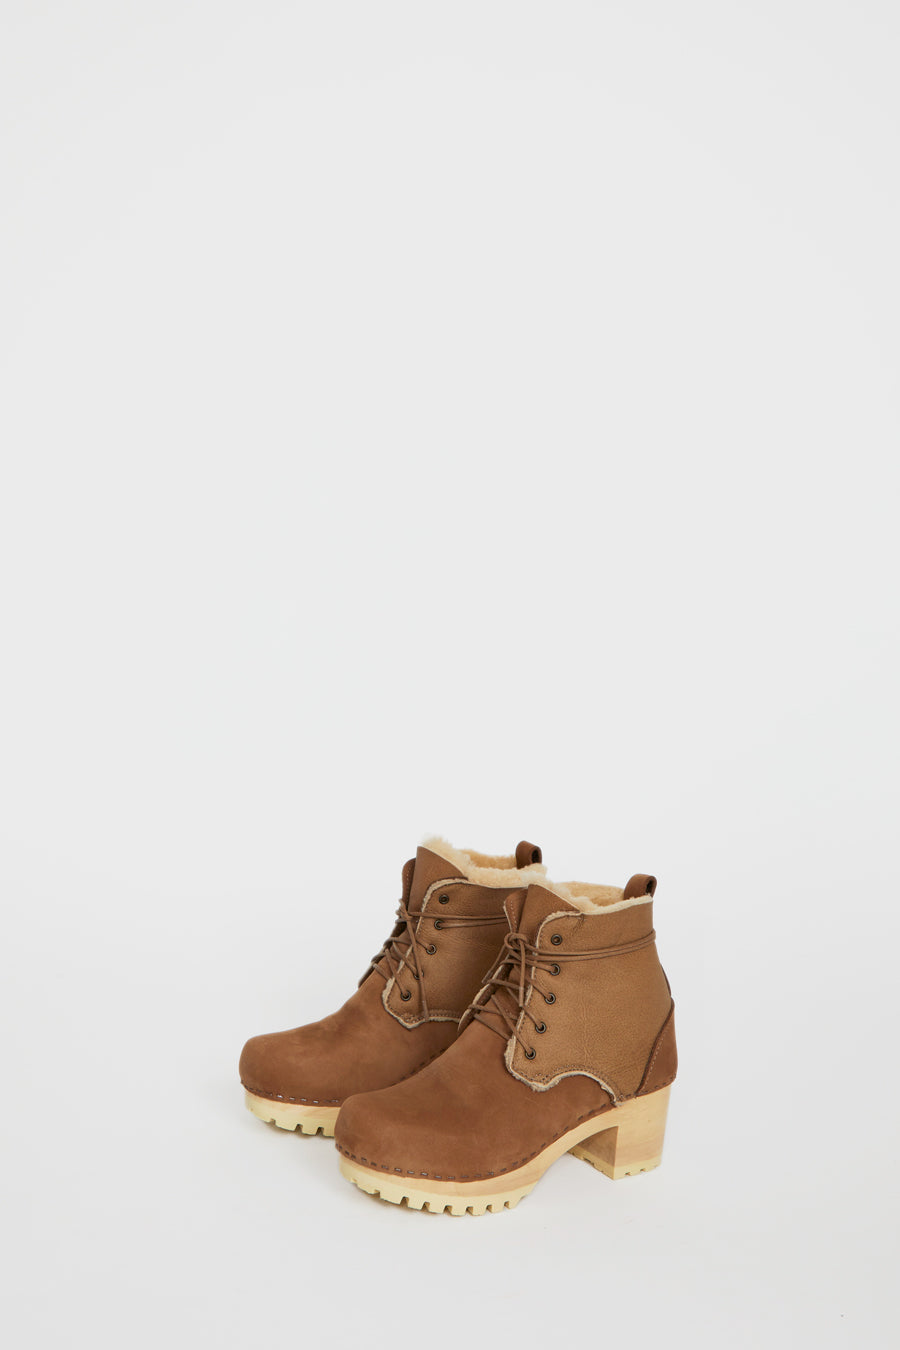 No.6 Lander Lace Up Shearling Clog Boot on Mid Tread in Honey Aviator on White Base